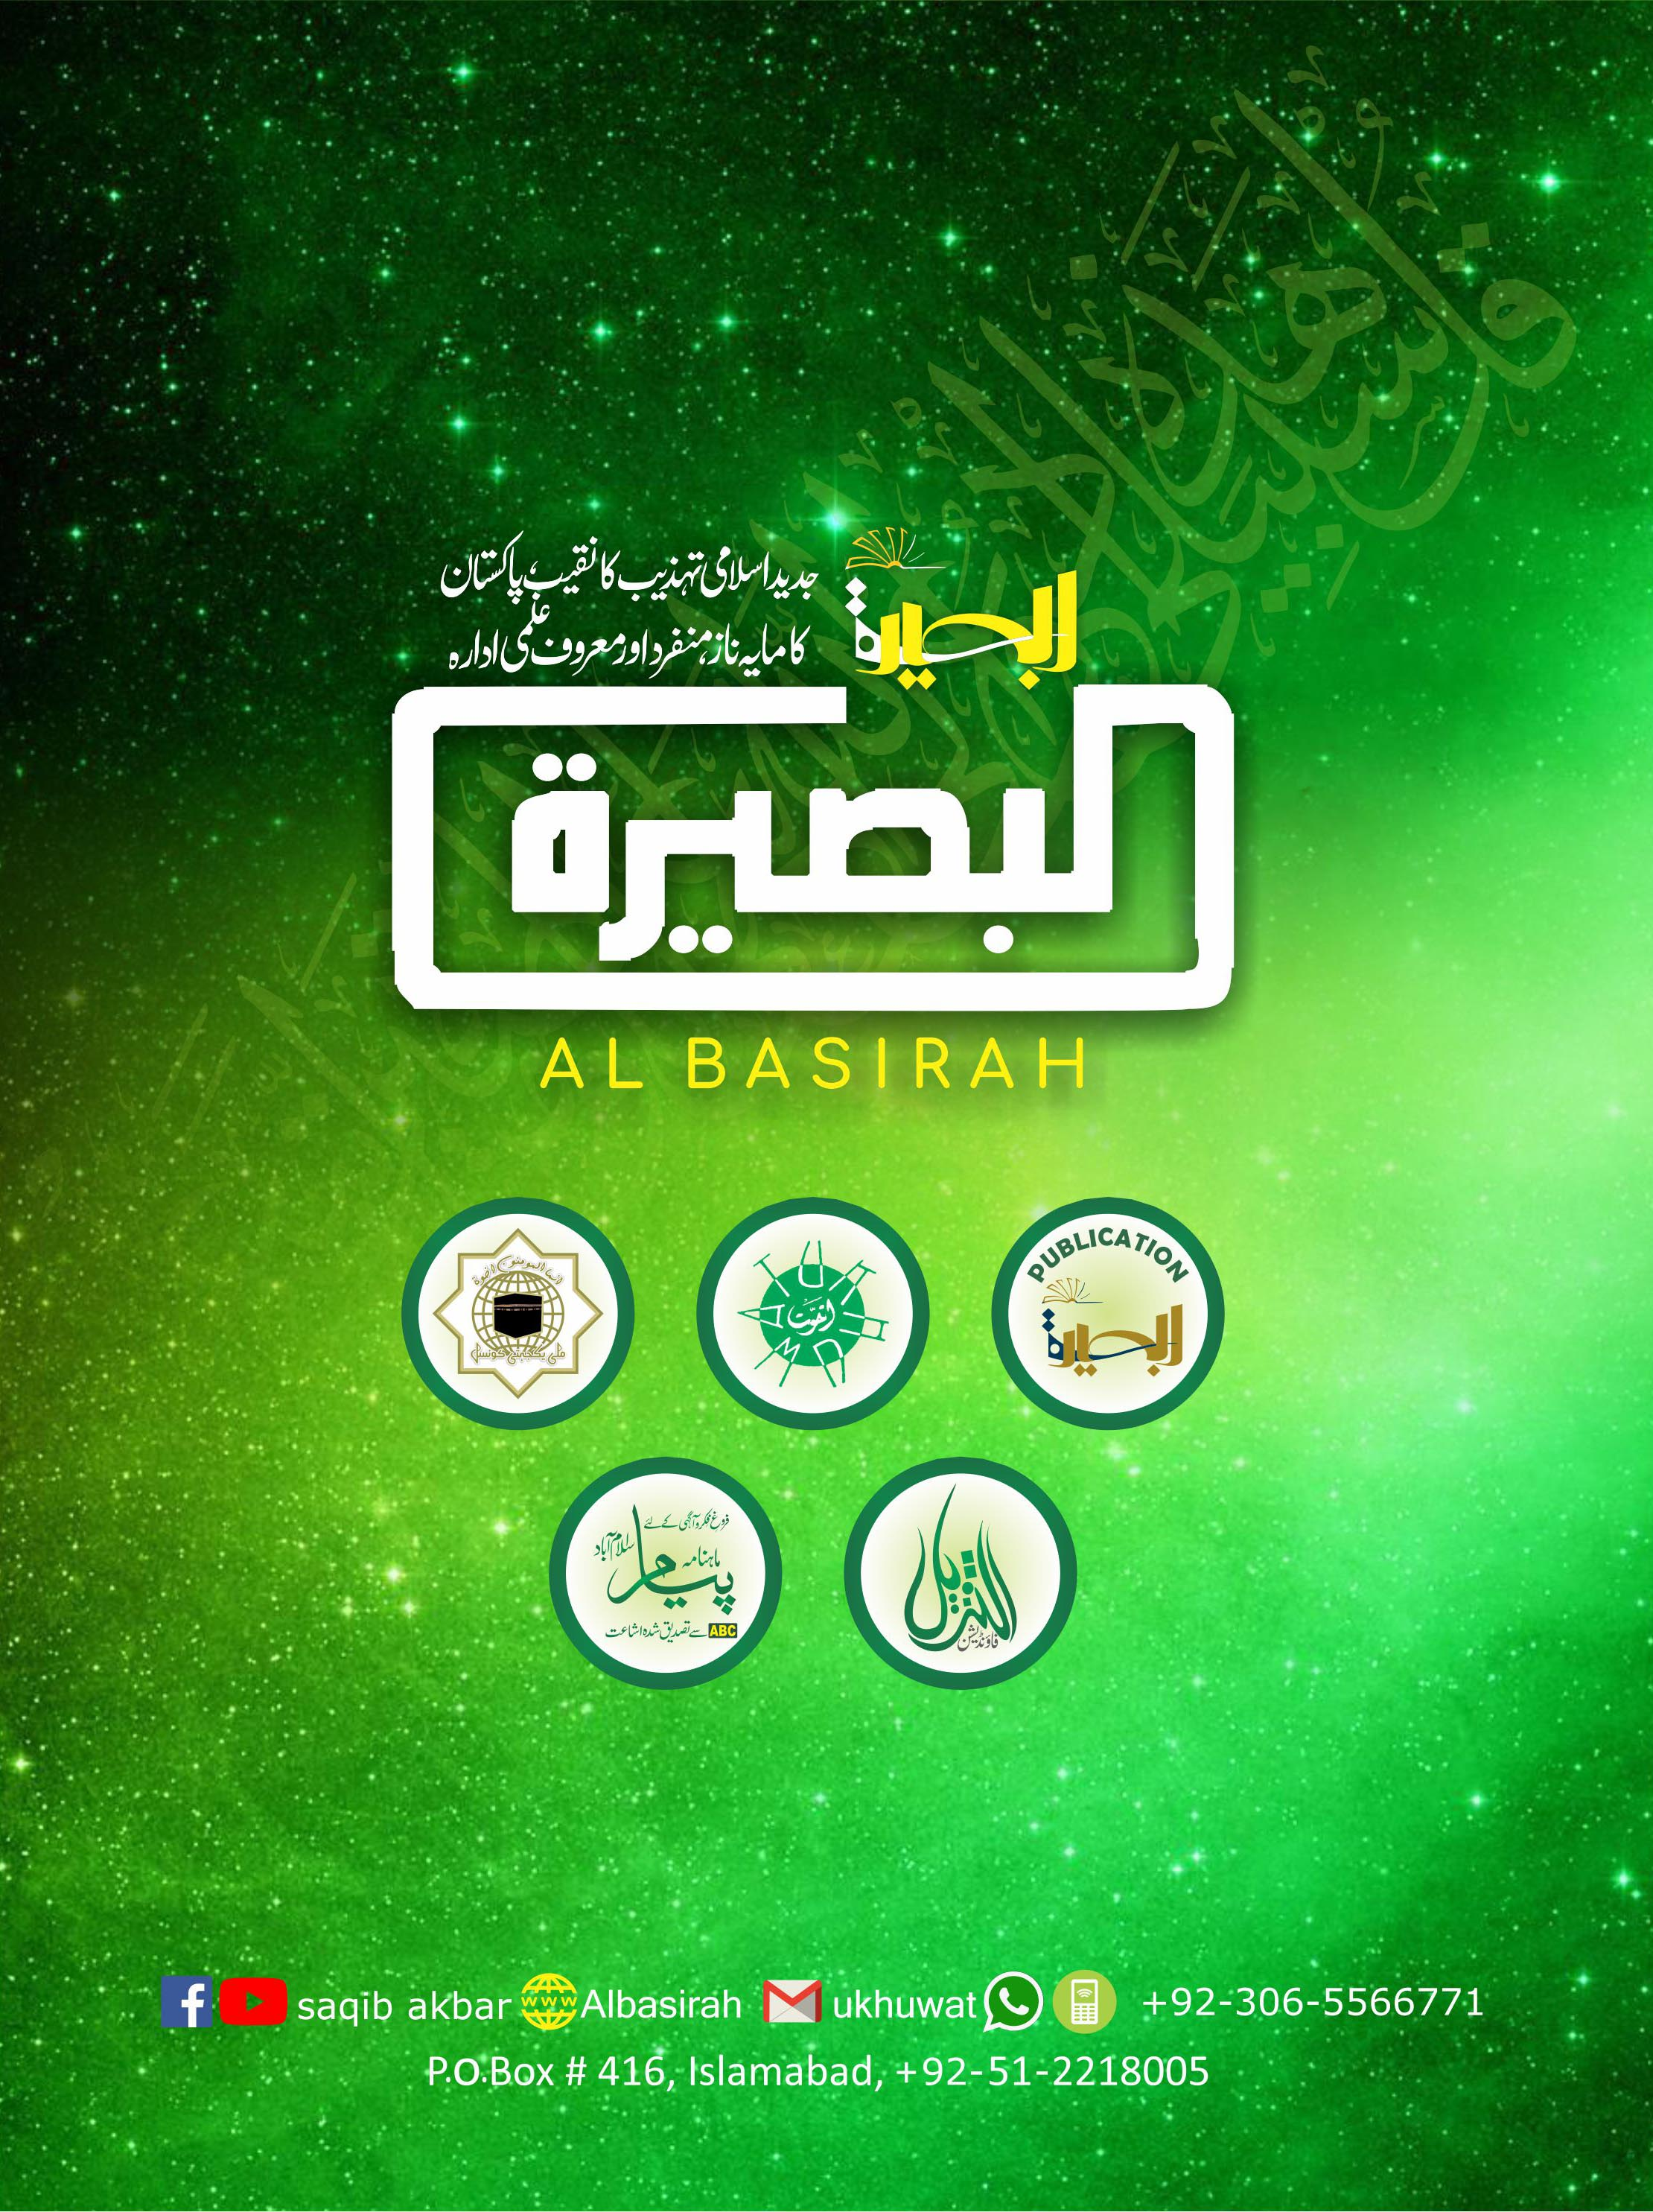 About Albasirah